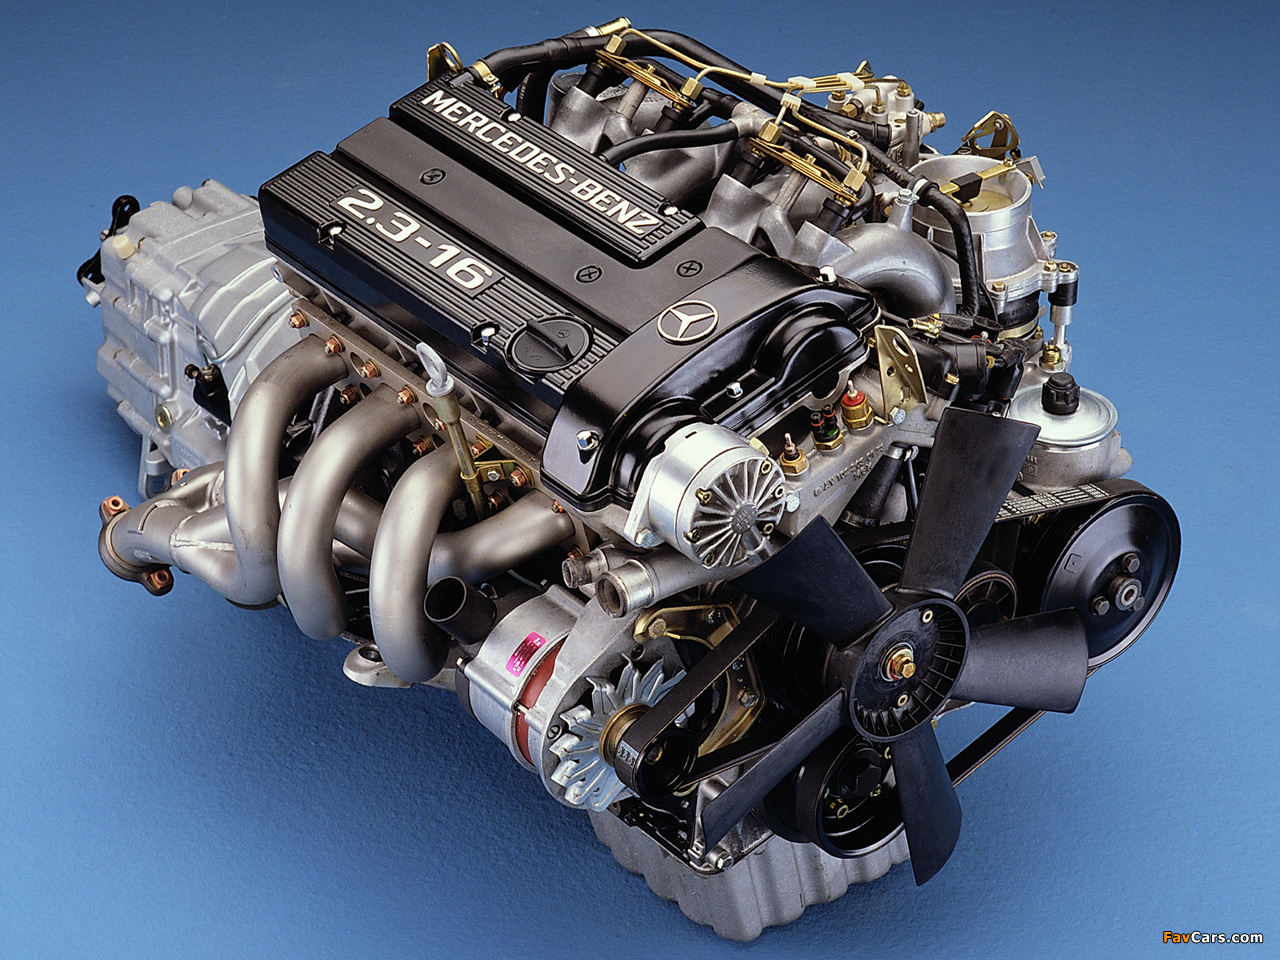 Mercedes benz wallpapers 1280x960 for Engine for mercedes benz